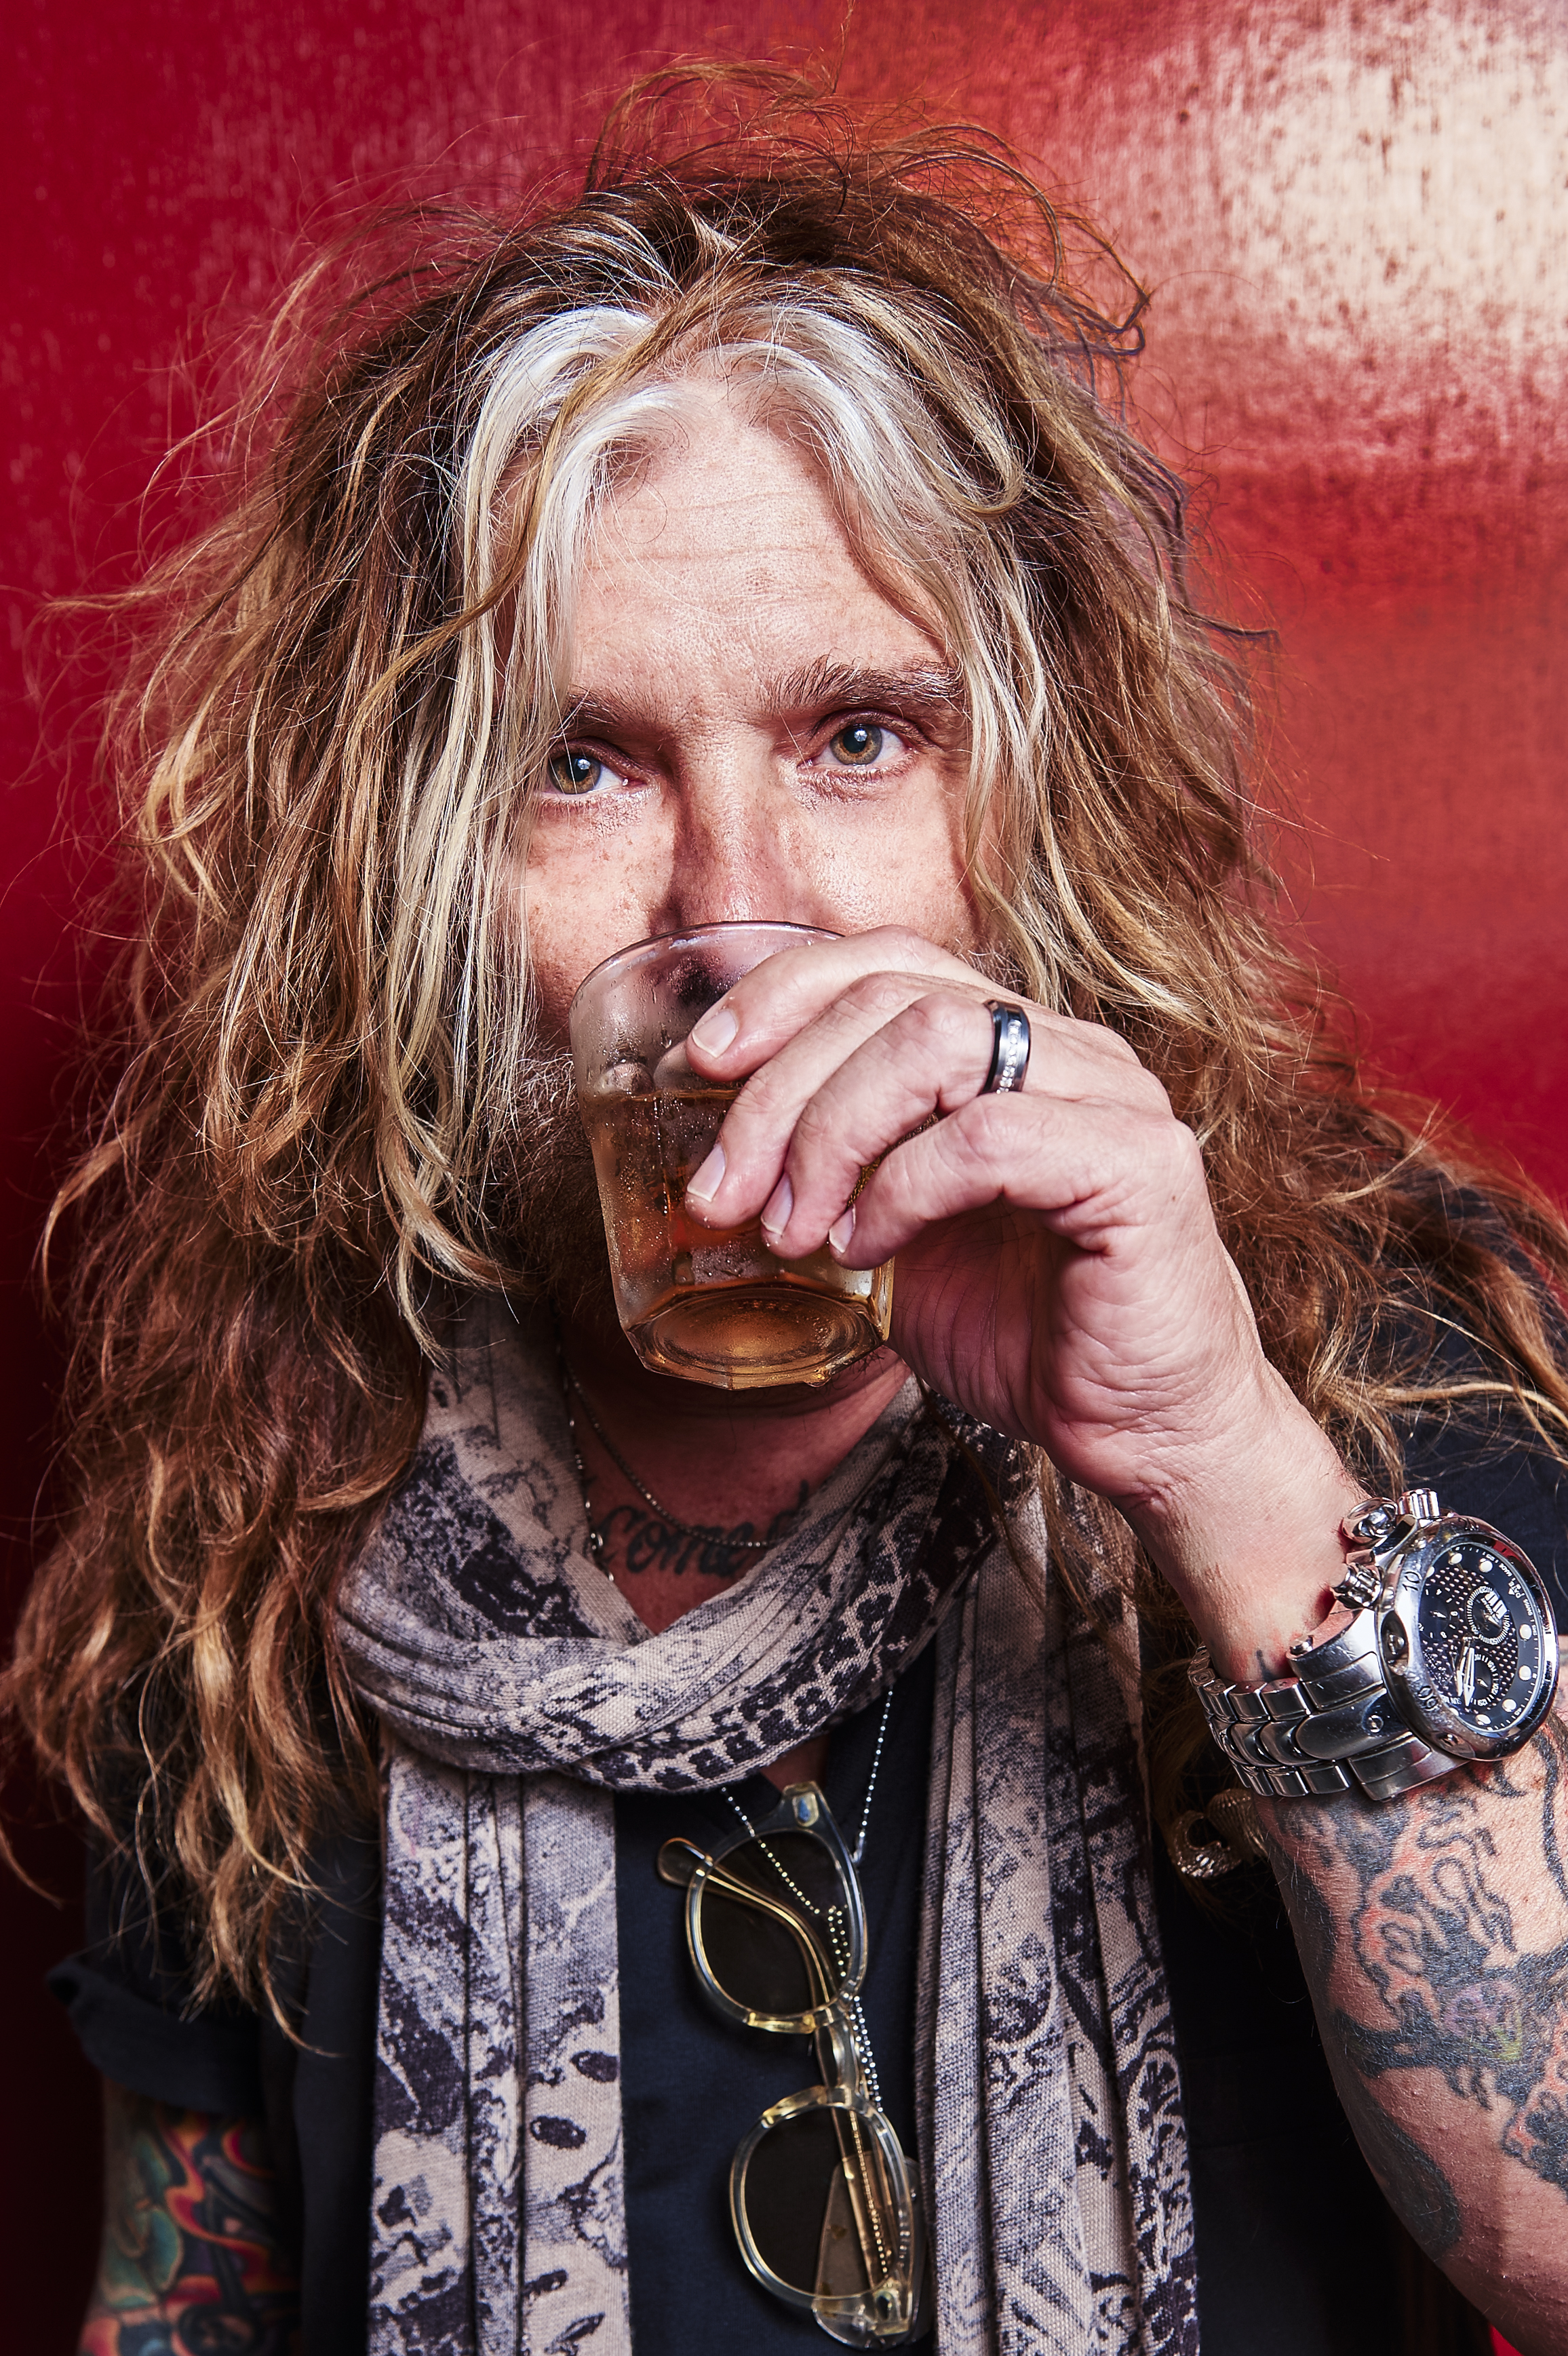 johncorabi - October 12, 2014 - 1367.jpg